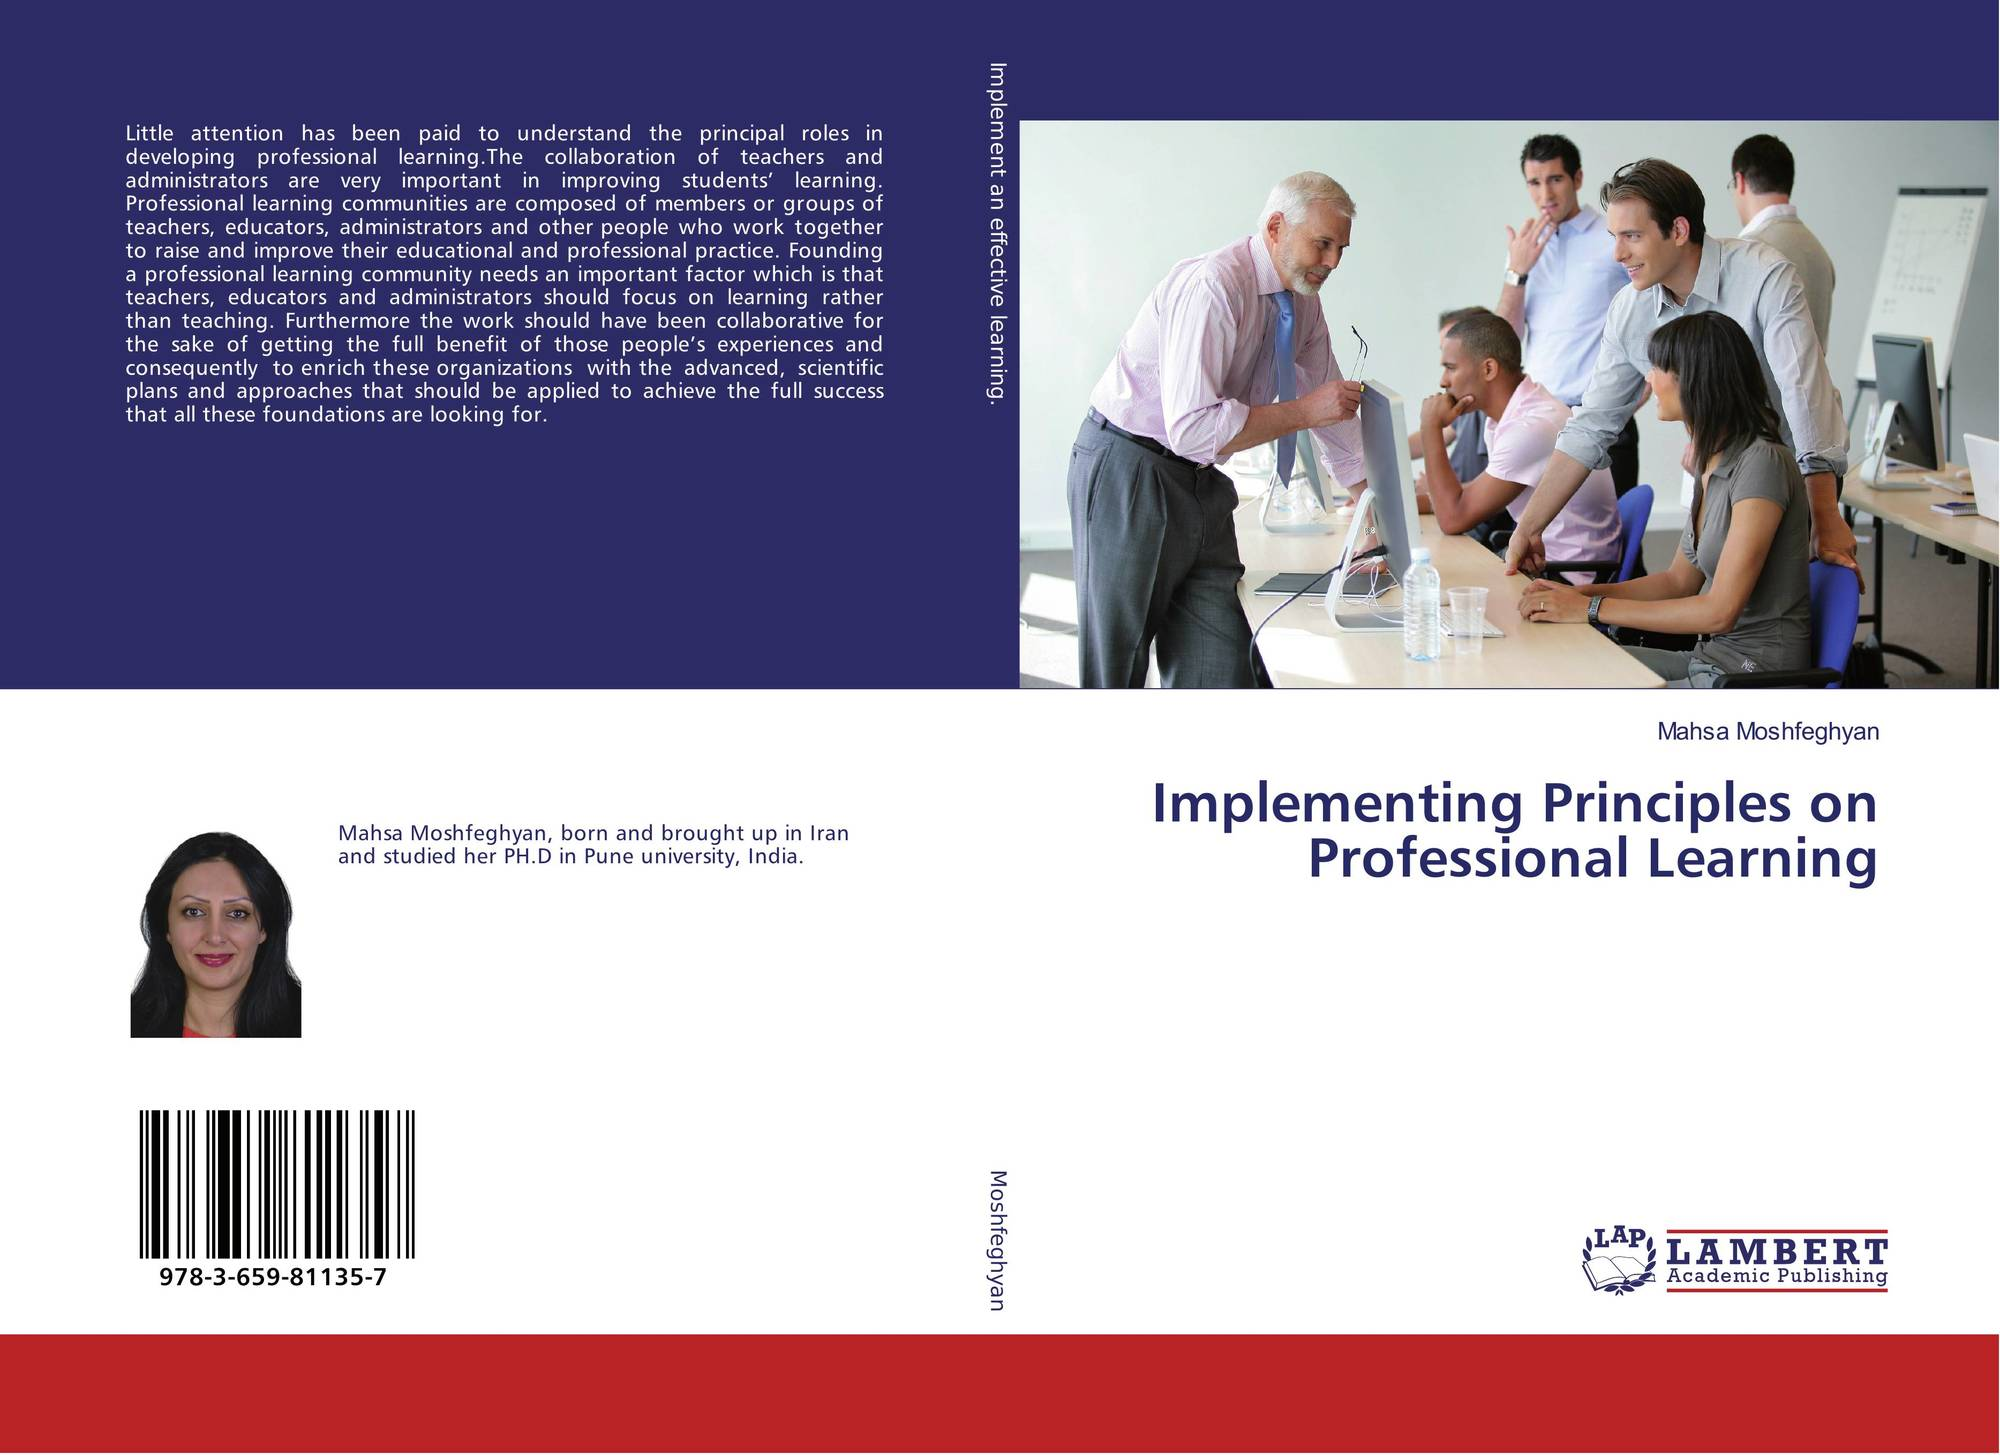 understanding the principle of professional development The australian professional standard for principals provides a framework for what you should know, understand and do to succeed as a principal or school leader using both standards can help you gain a holistic understanding of professional growth in education settings.